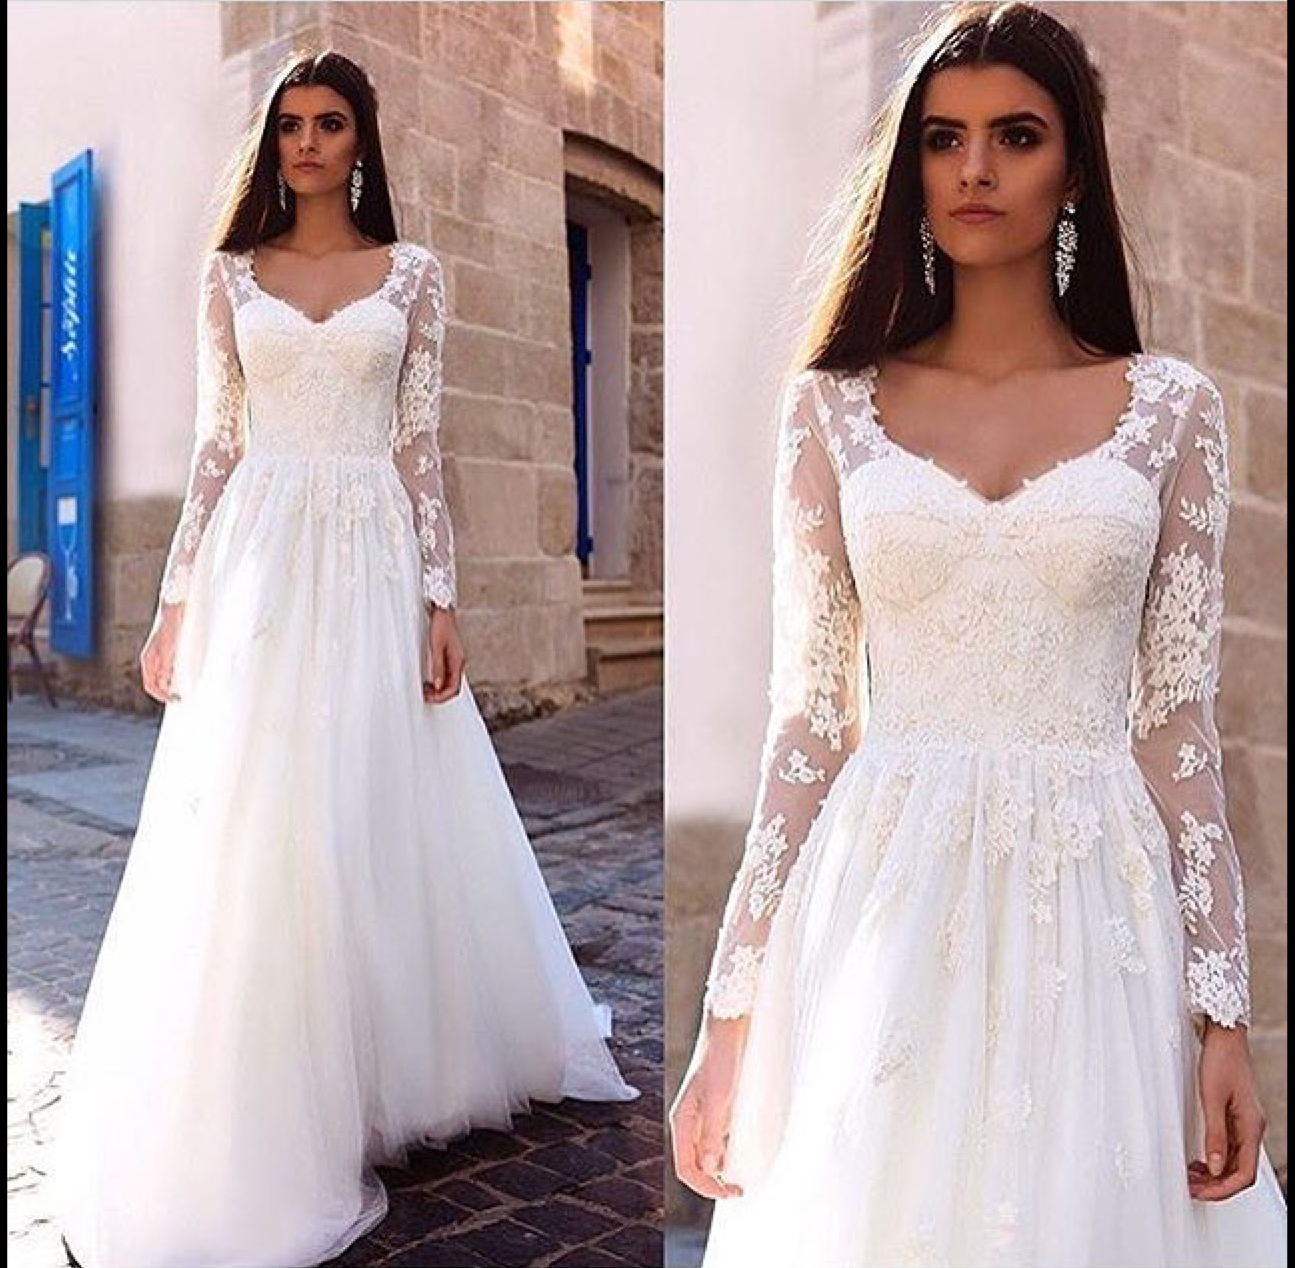 Long Sleeve Lace Wedding Dress Lace Ball Gown Vintage ...